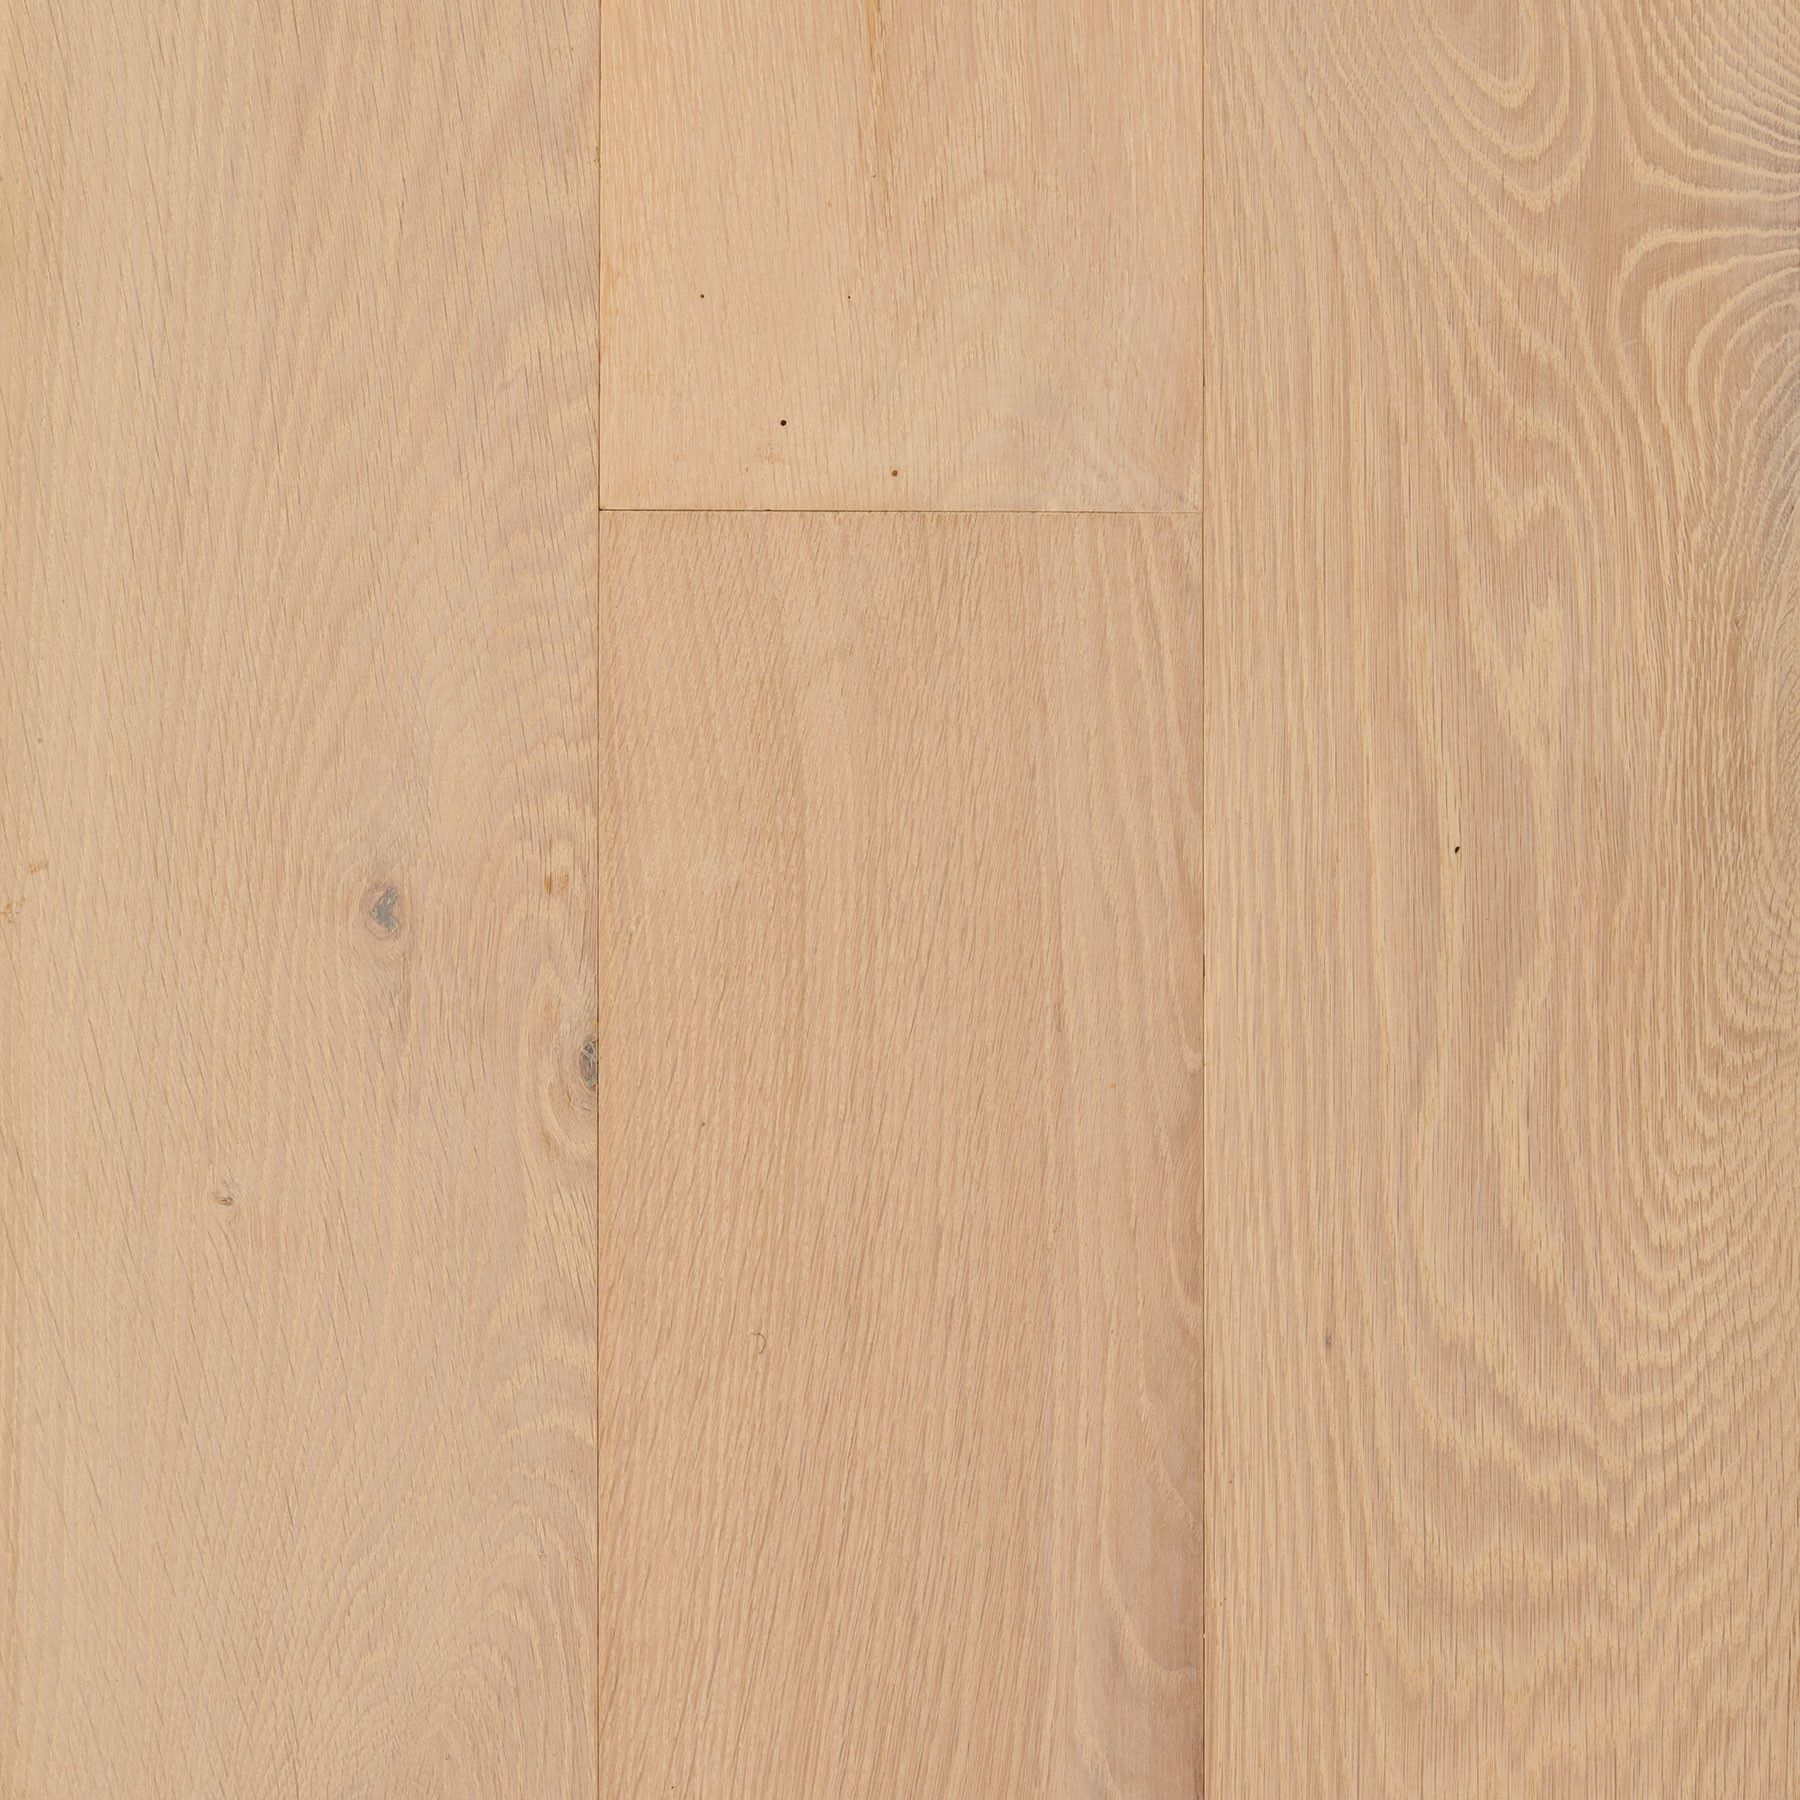 What is Bamboo Hardwood Flooring Of Oiled Domestic Frost Etx Surfaces Throughout Oiled Domestic